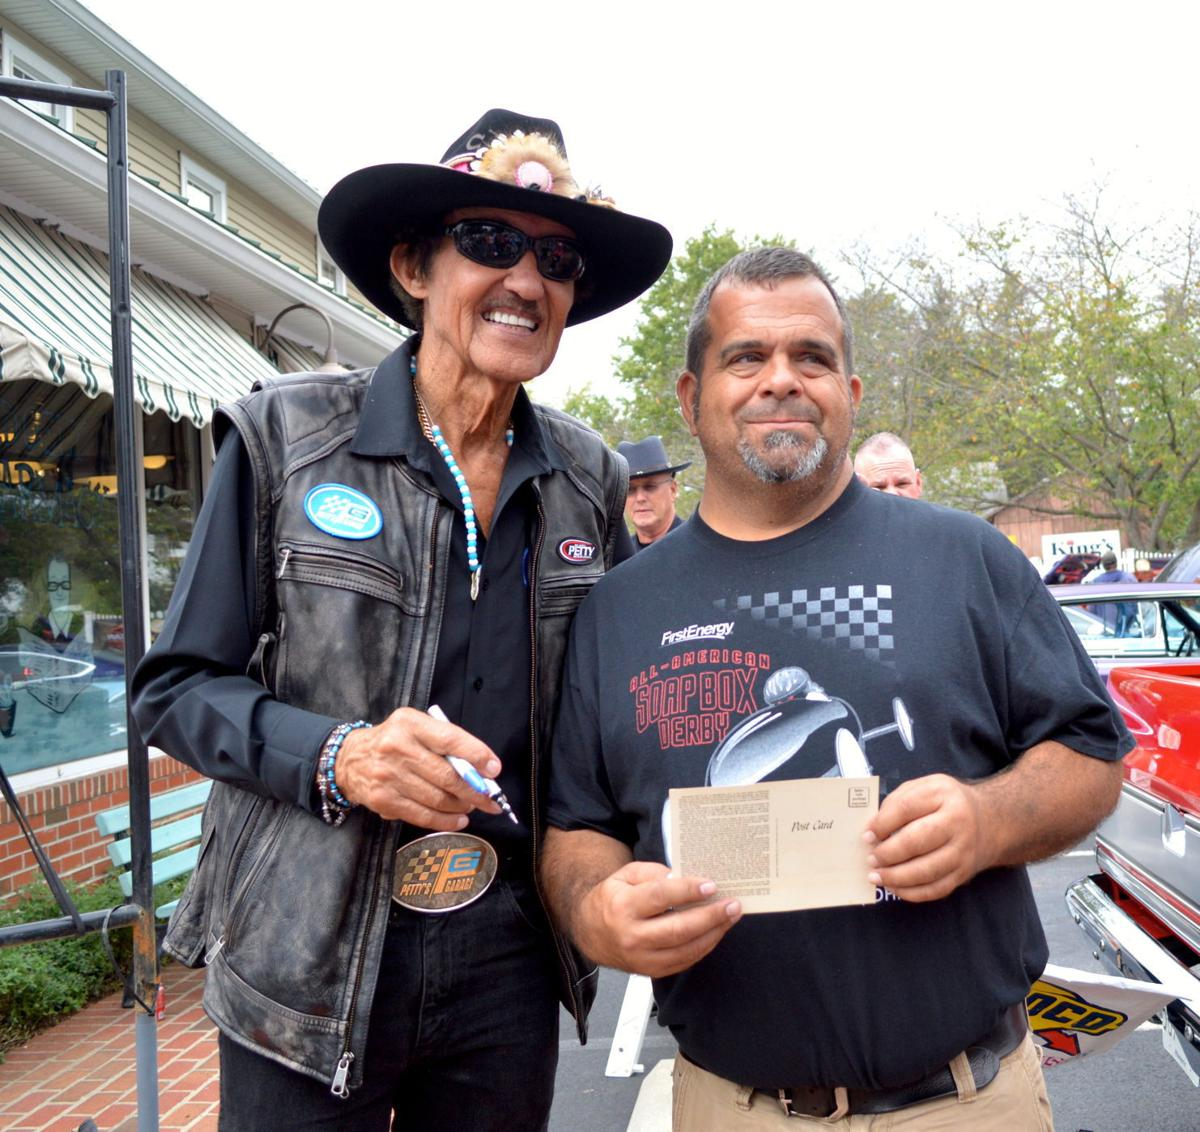 Richard Petty Returns To Petty North In Ridgely Life Stardemcom - Ridgely car show